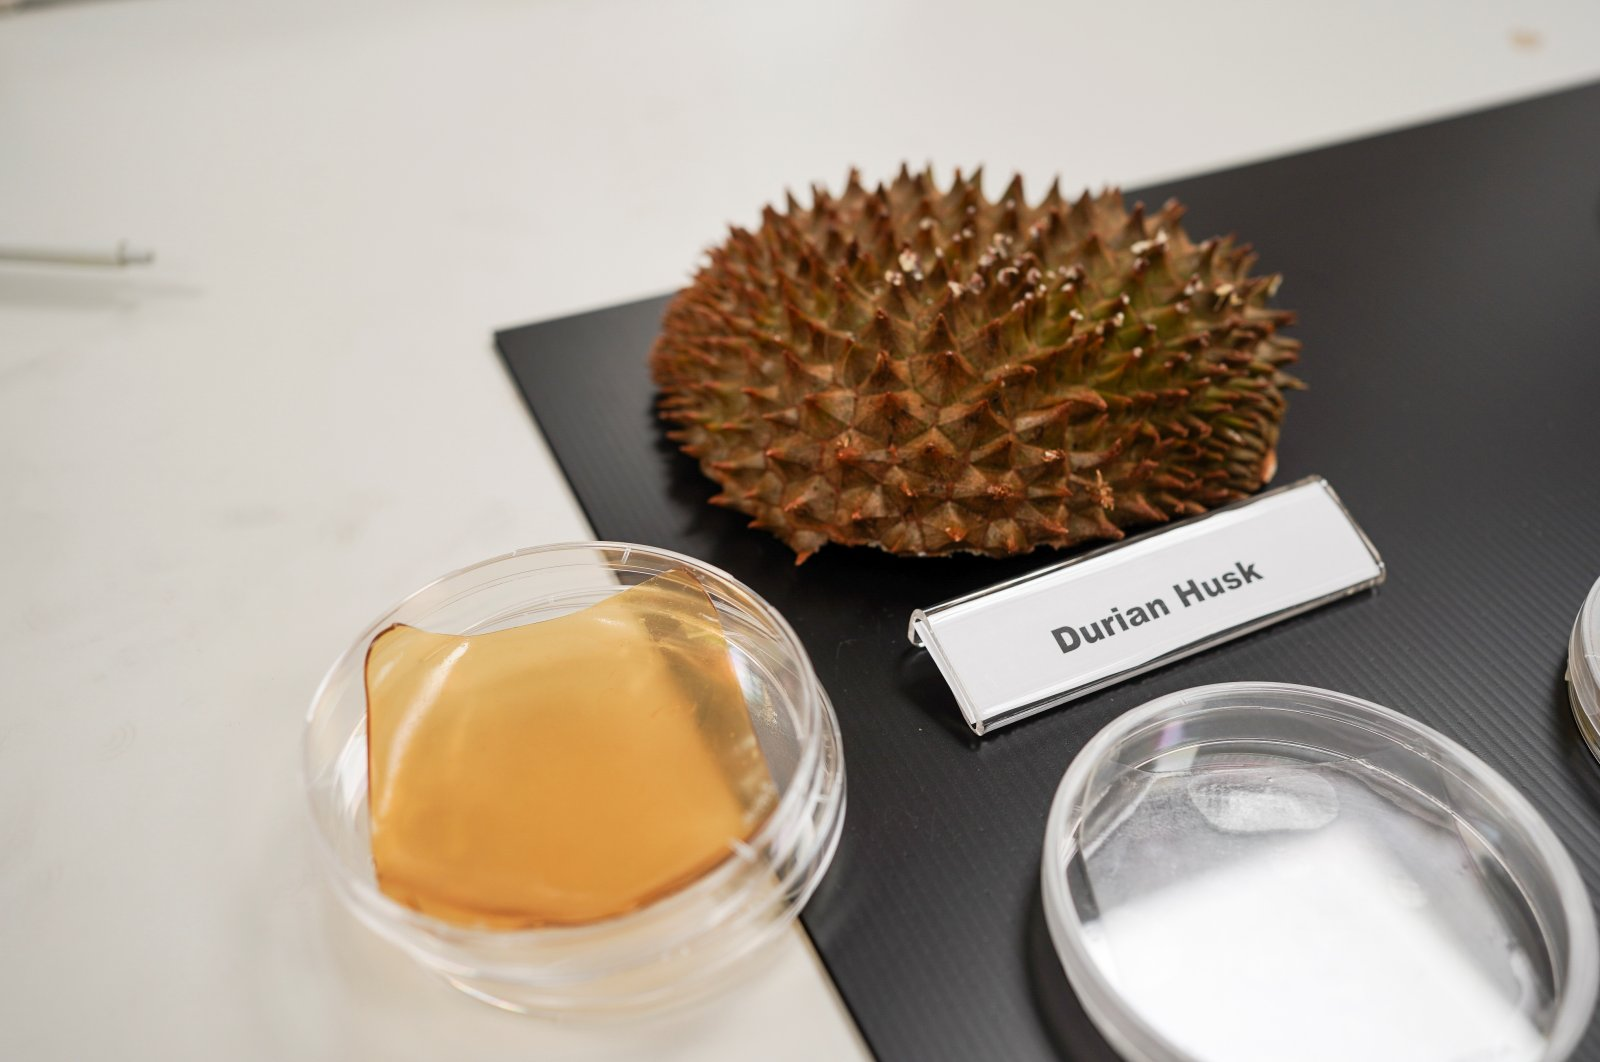 Durian husk and petri dish containing cellulose hydrogel sheet made out of durian husk with yeast phenolics are seen in Singapore, Sept. 16, 2021. (Reuters Photo)